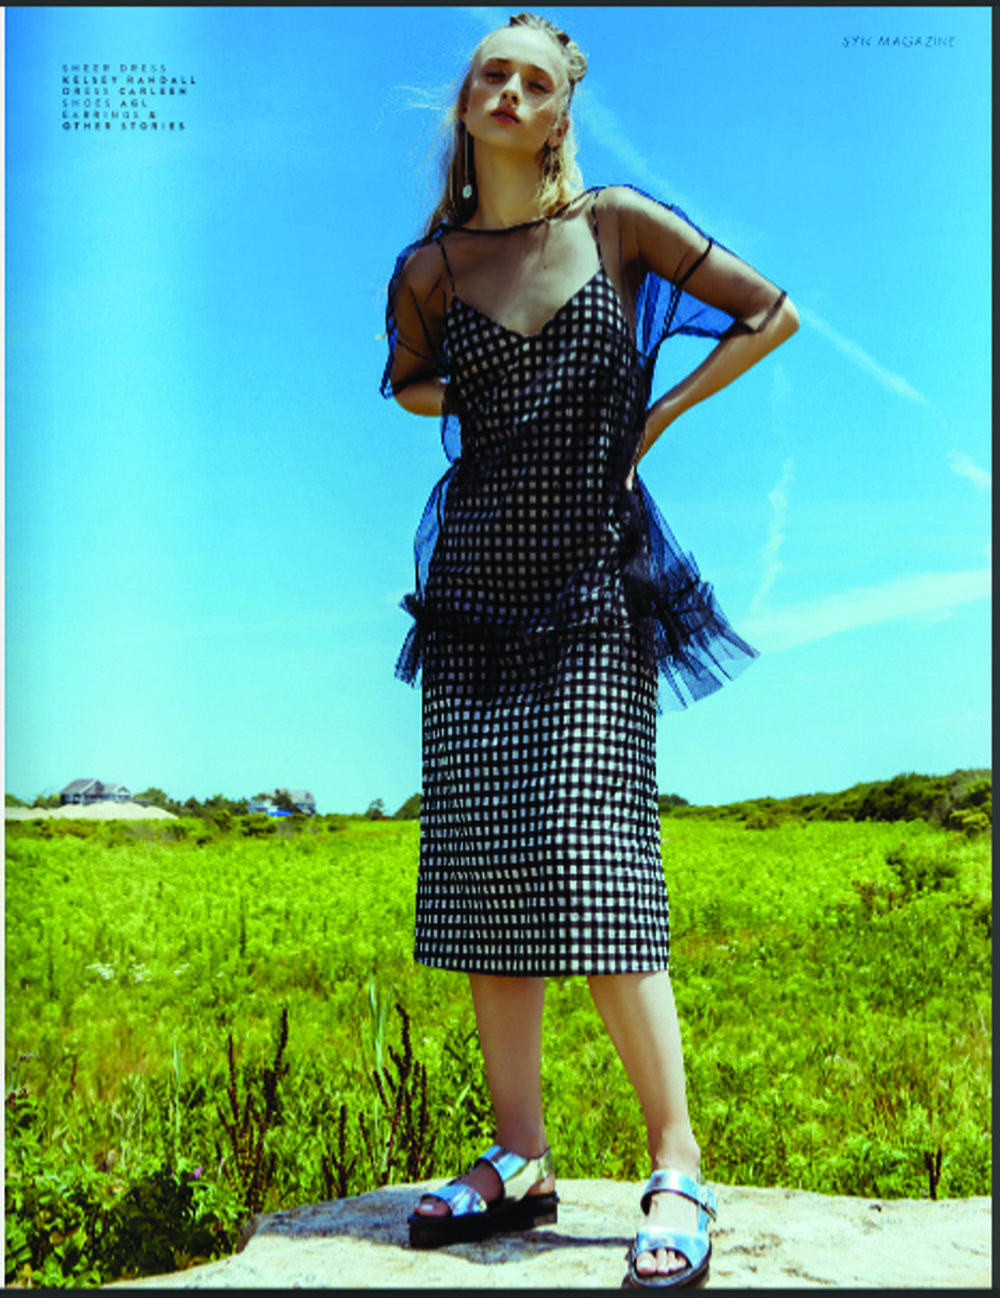 syn magazine kelsey randall black tulle babydoll dress sheer baby doll short sleeve ruffle gem gingham check